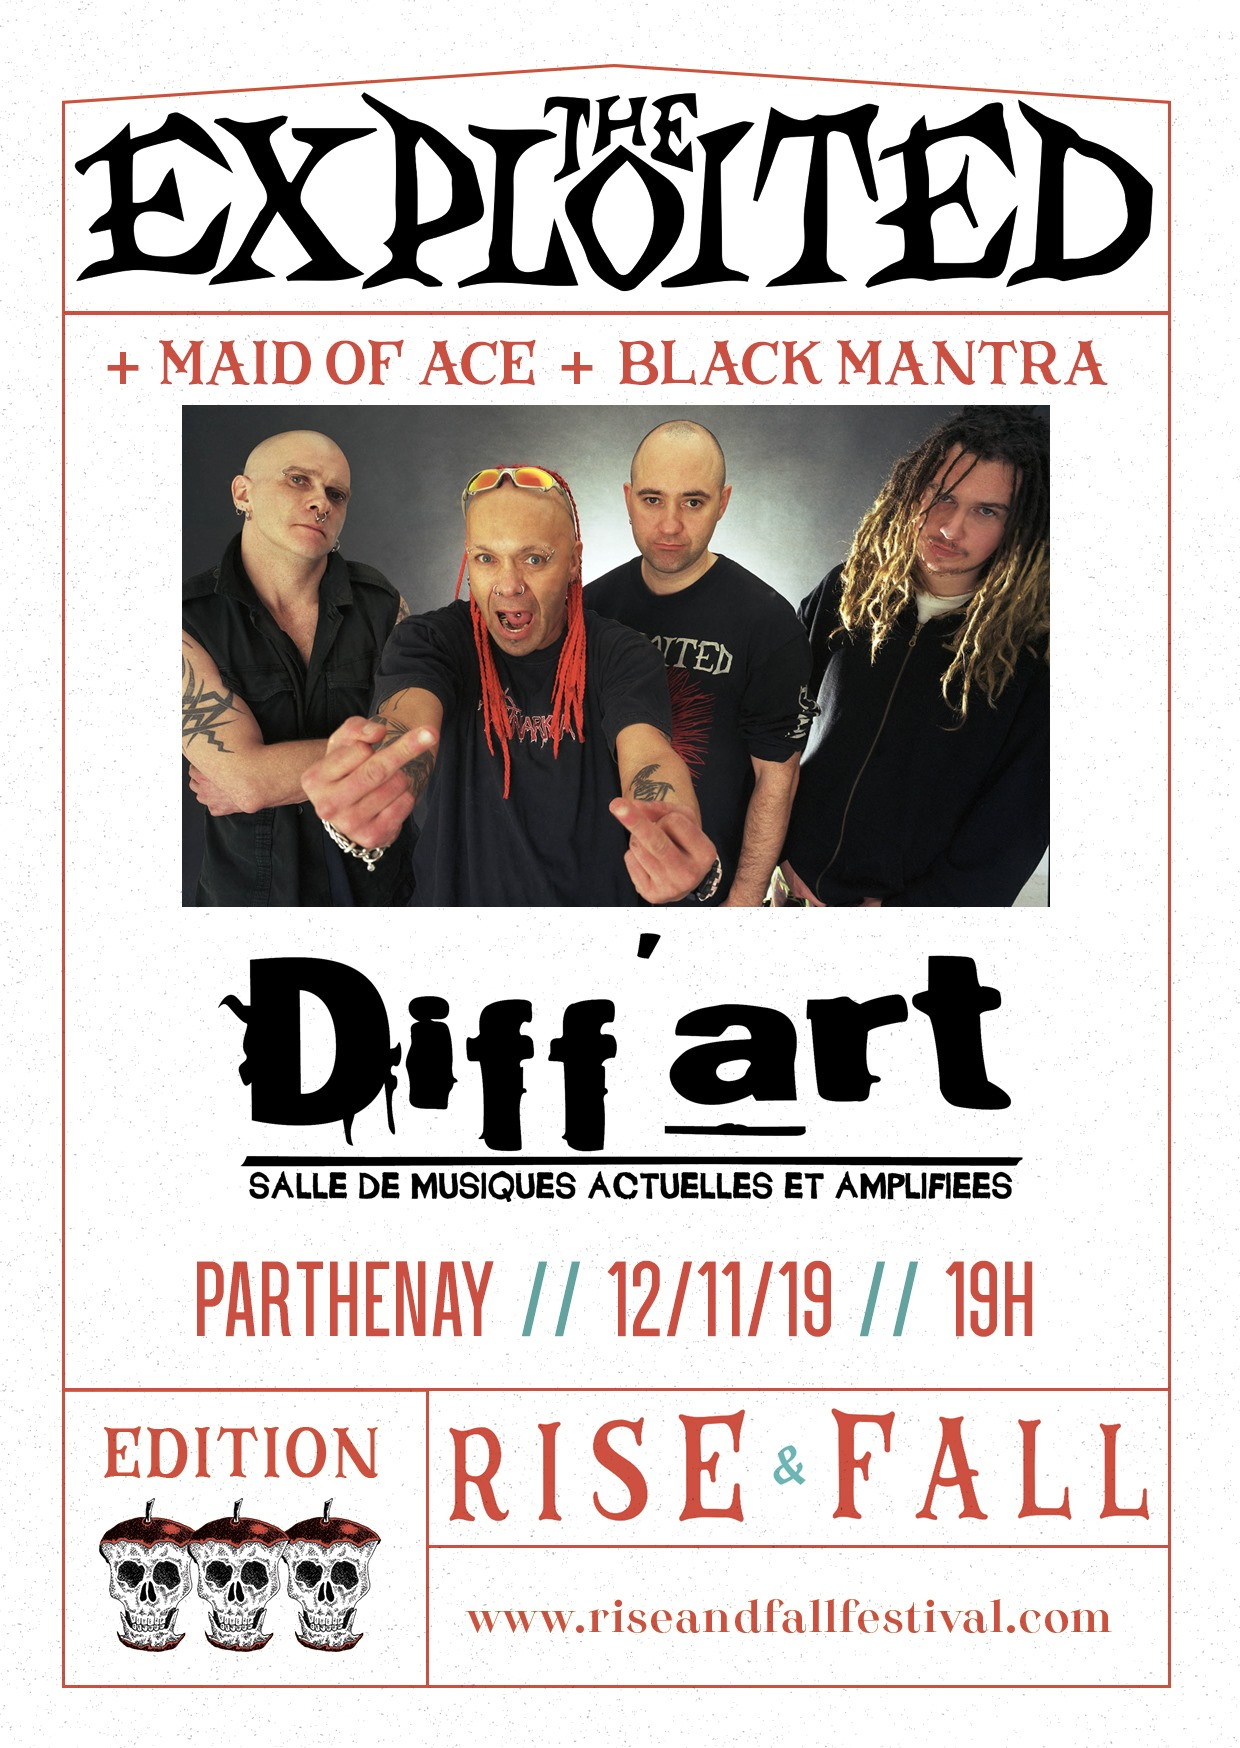 FESTIVAL RISE & FALL // THE EXPLOITED + MAID OF ACE + BLACK MANTRA